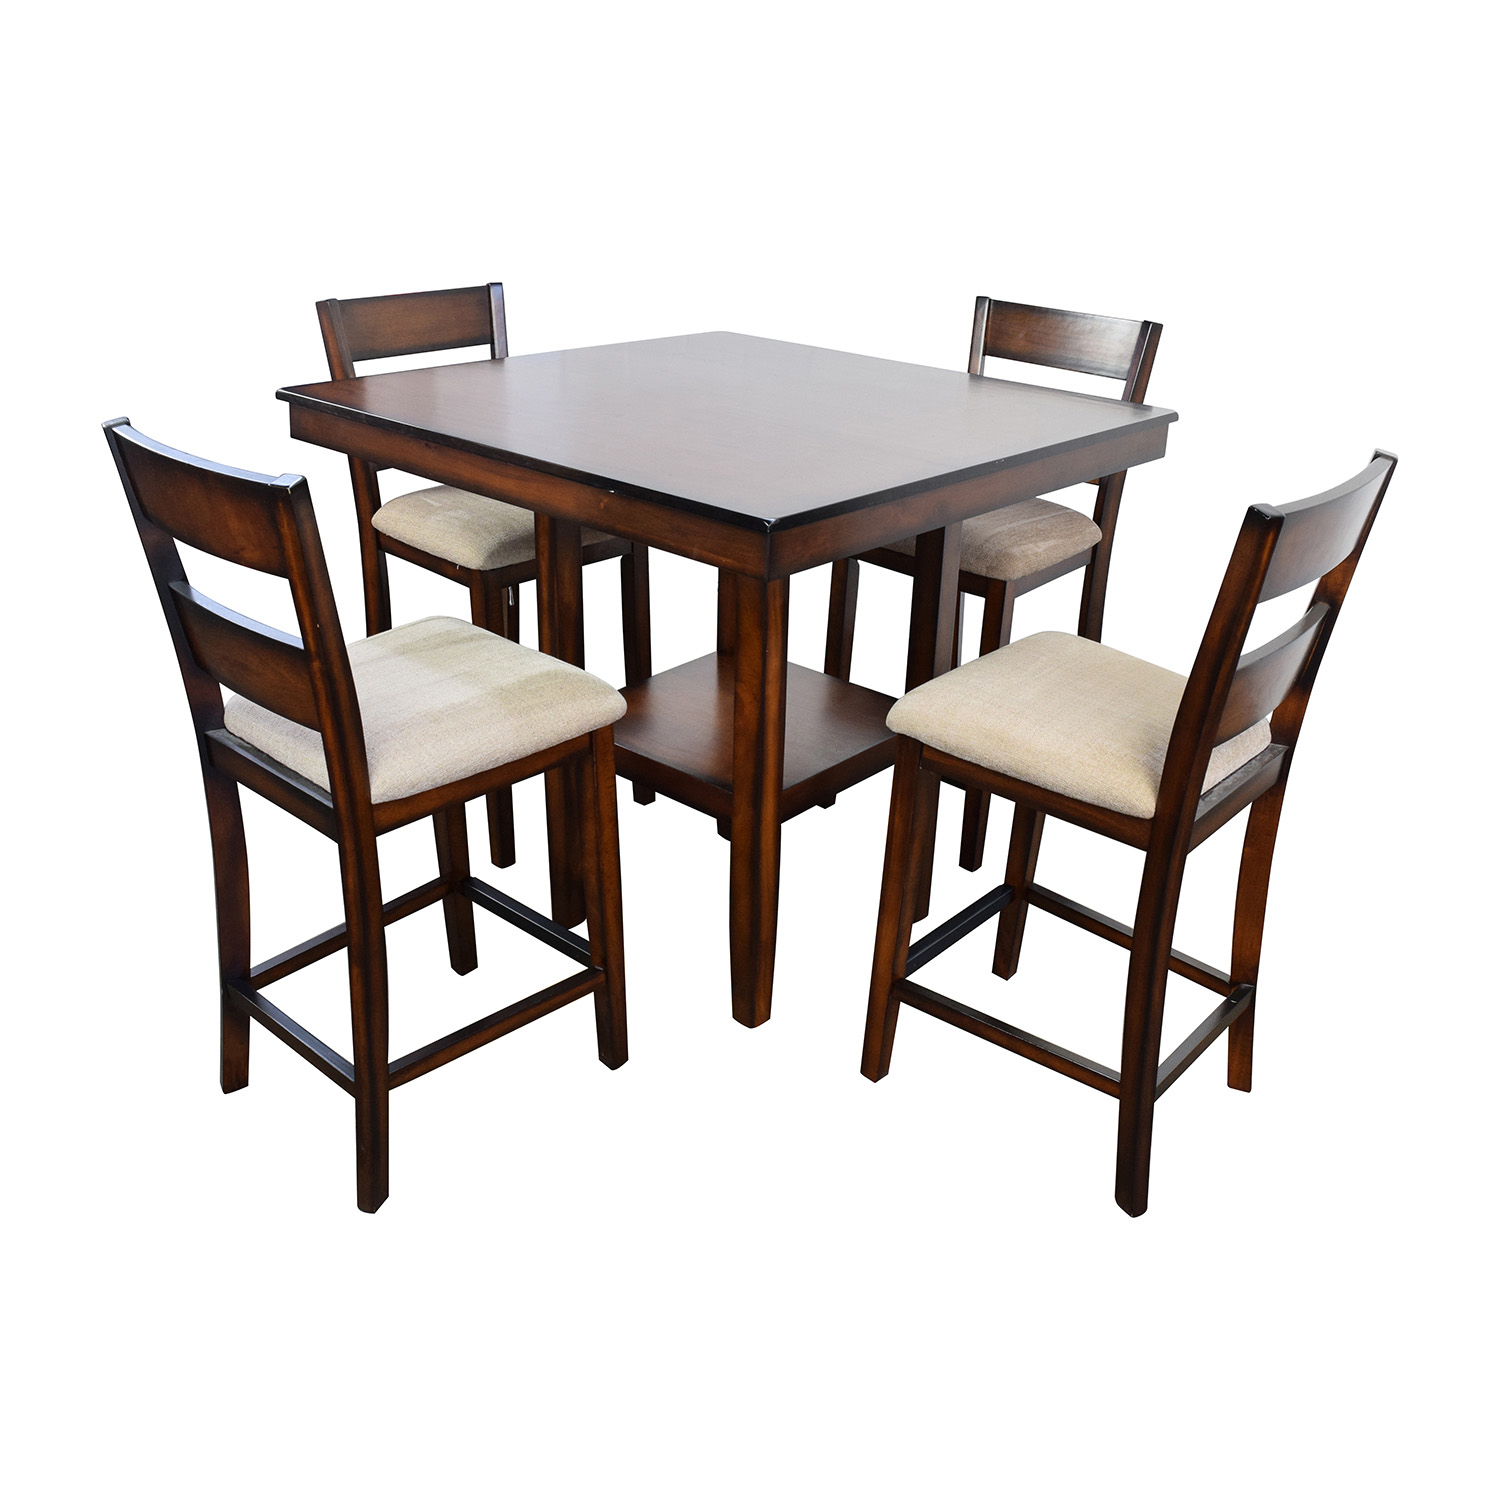 OFF Macy s Macy s Branton 5 Pc Counter Height Dining Set